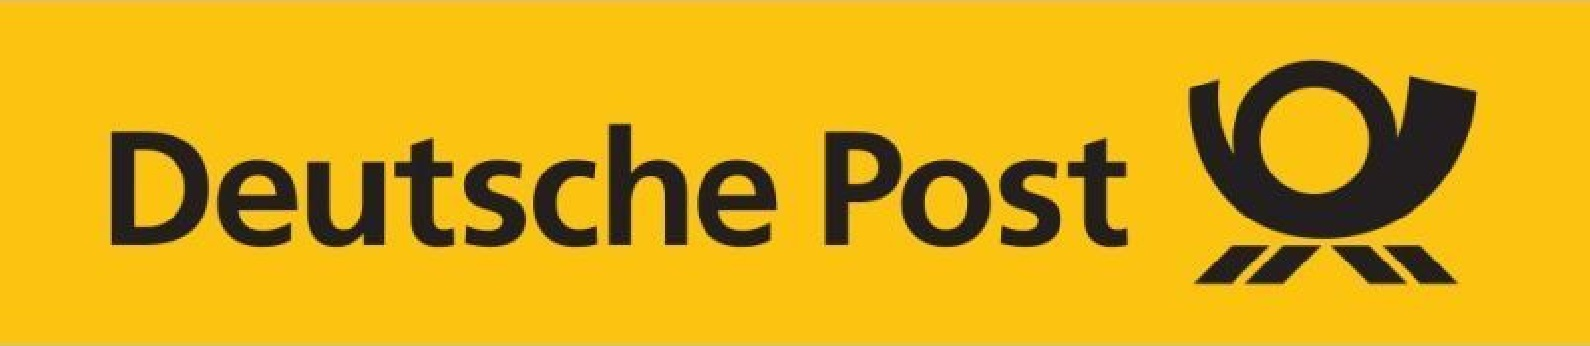 Deutsche_Post_Logo